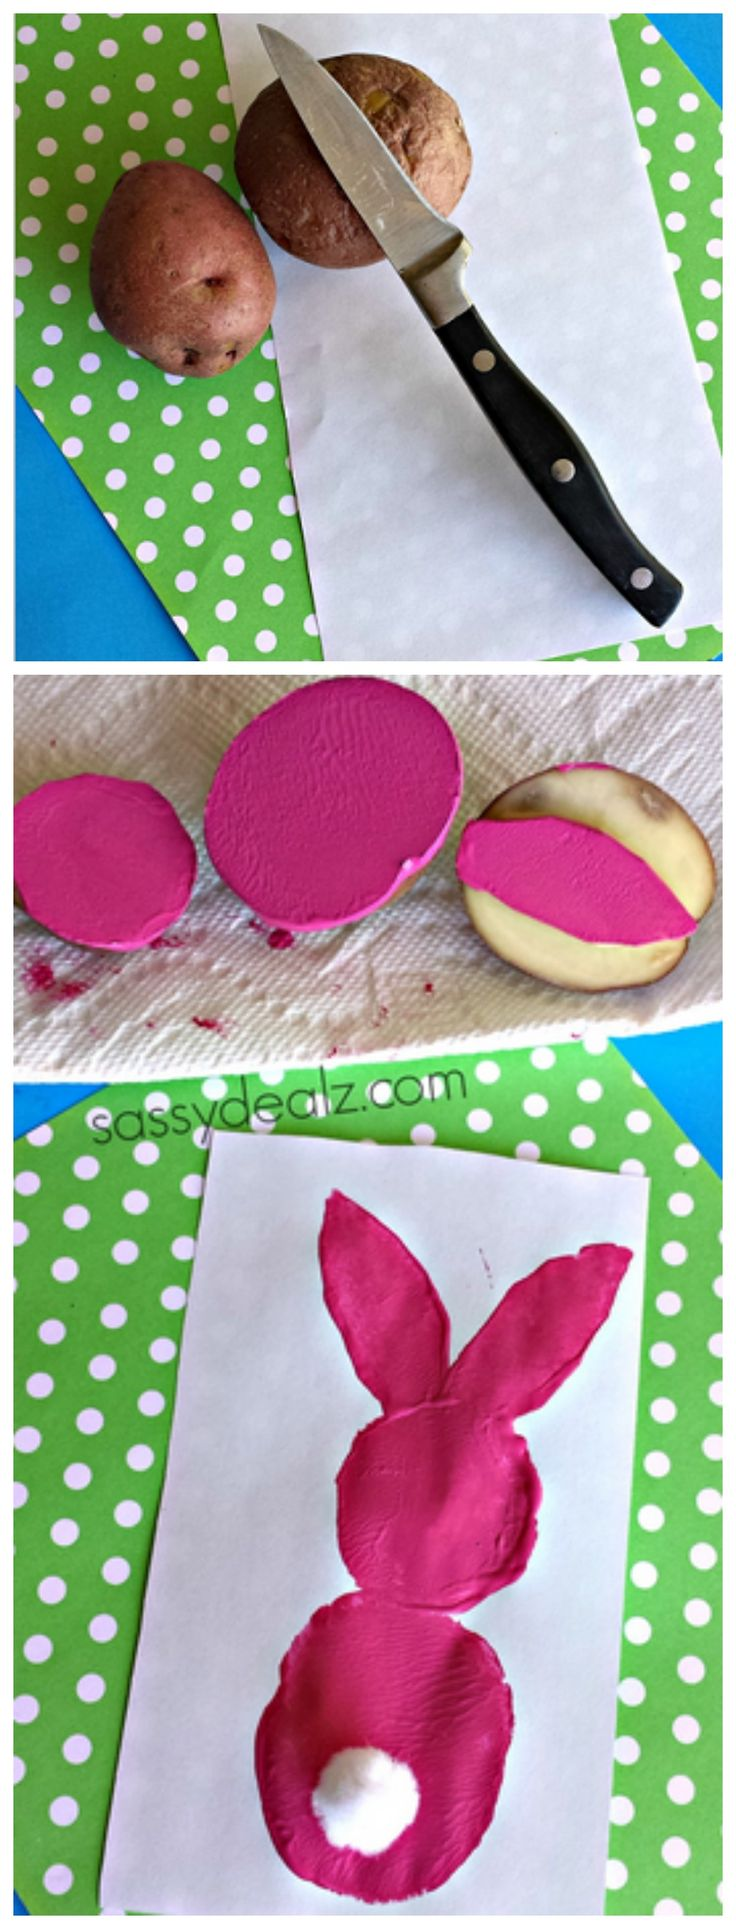 Make a bunny craft for Easter using old potatoes! #Kidscraft #Easter craft for kids | http://www.sassydealz.com/2014/04/use-potato-make-bunny-stamp-kids-craft.html